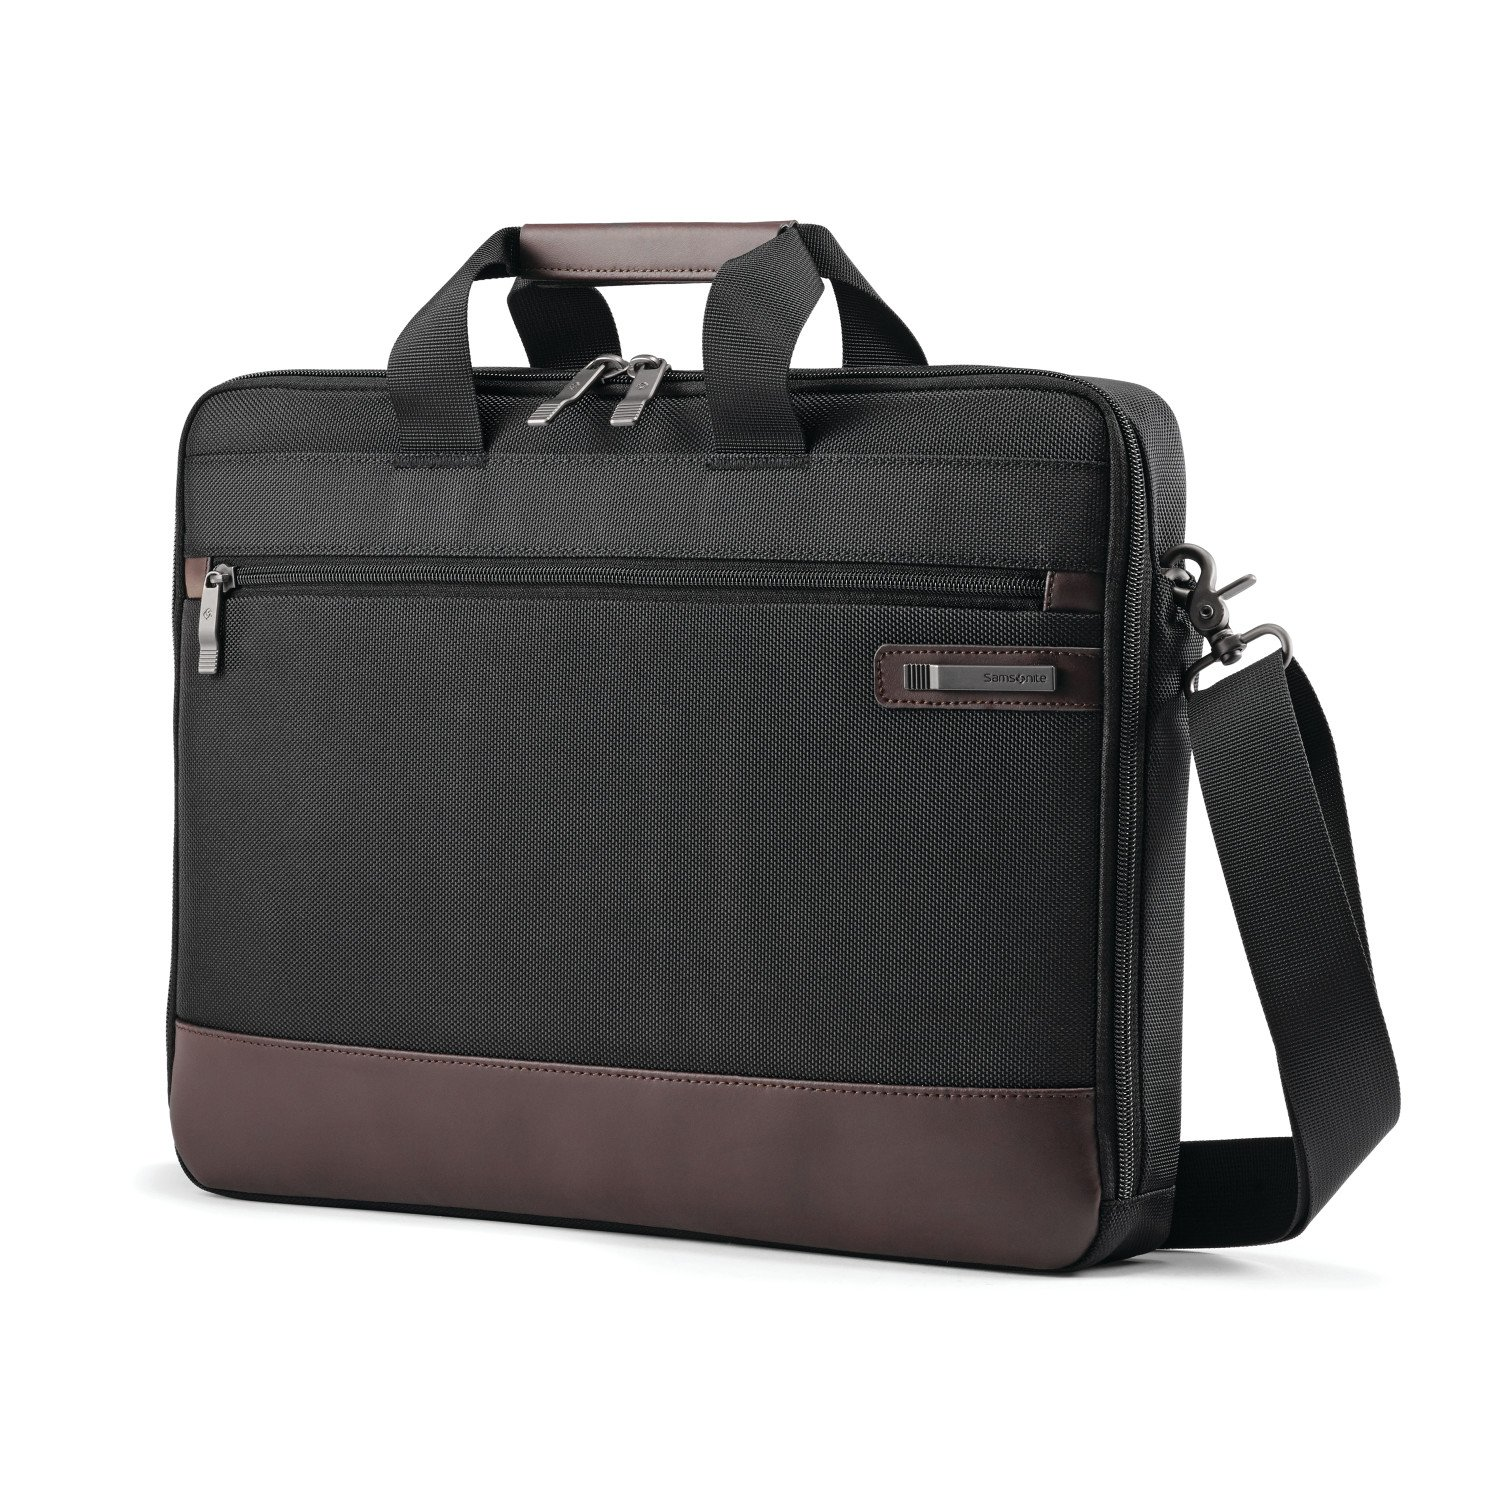 Samsonite Kombi 15.6-inch Slim Briefcase, Black/Brown, International Carry-On (Model:92315-1051) Samsonite Corporation - CA